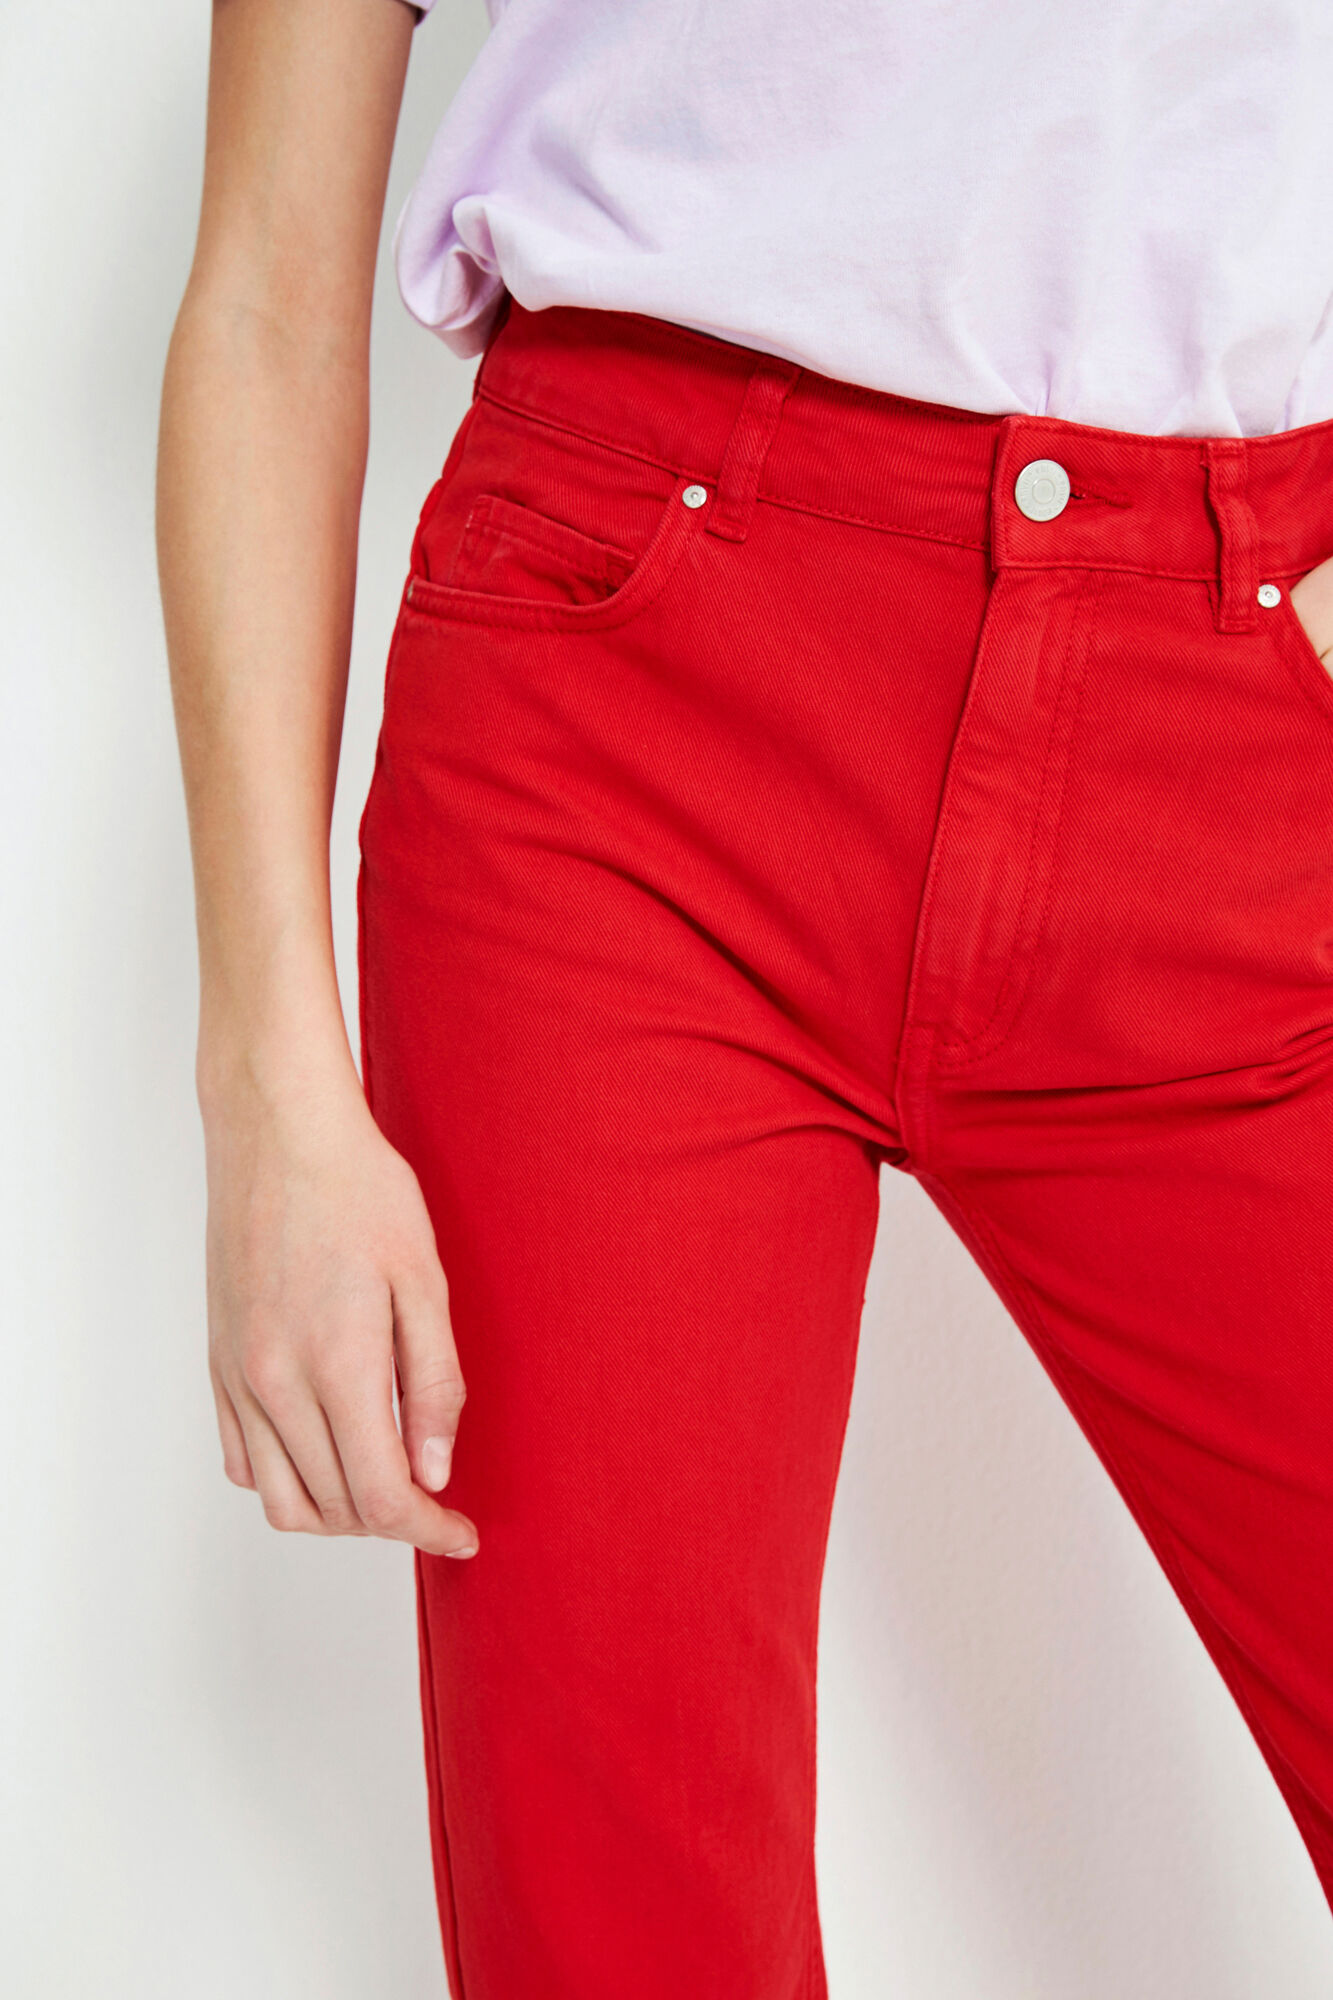 ENBRENDA JEANS CUT 6522, CANDY RED